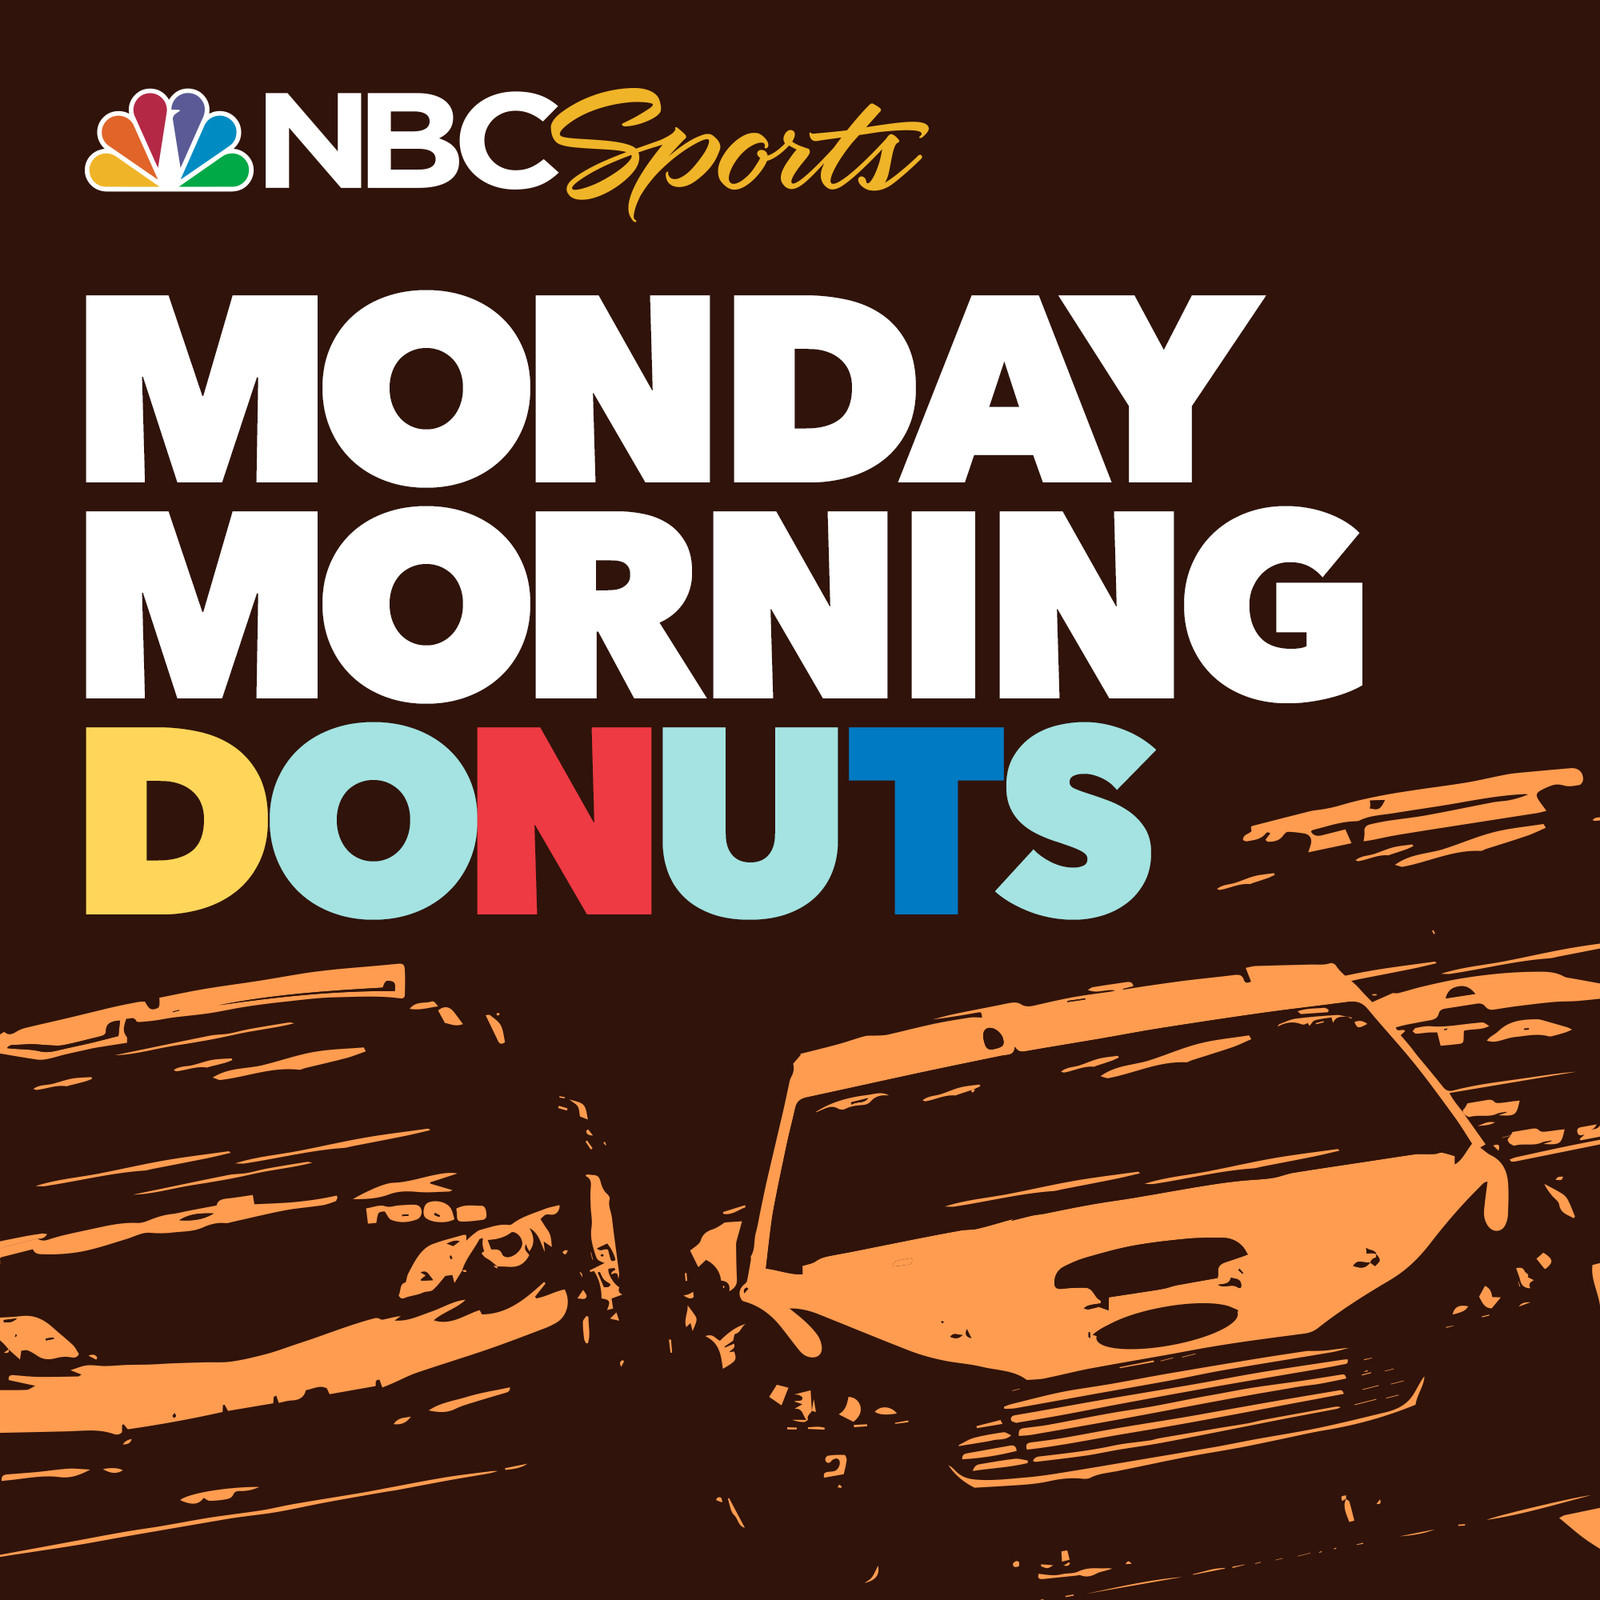 Monday Morning Donuts